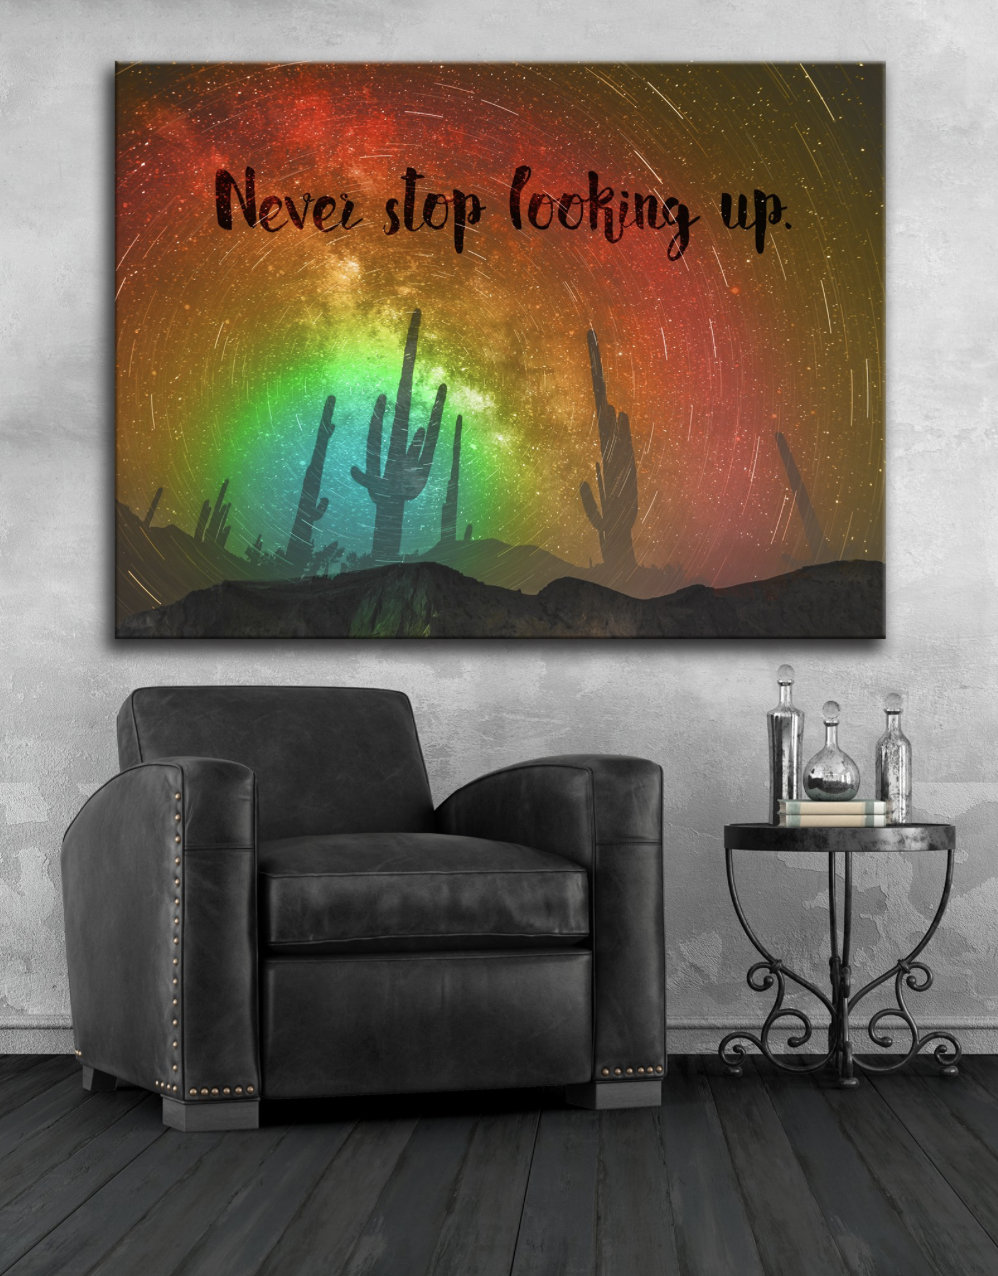 Home Wall Art: Never Stop Looking Up (Wood Frame Ready To Hang)